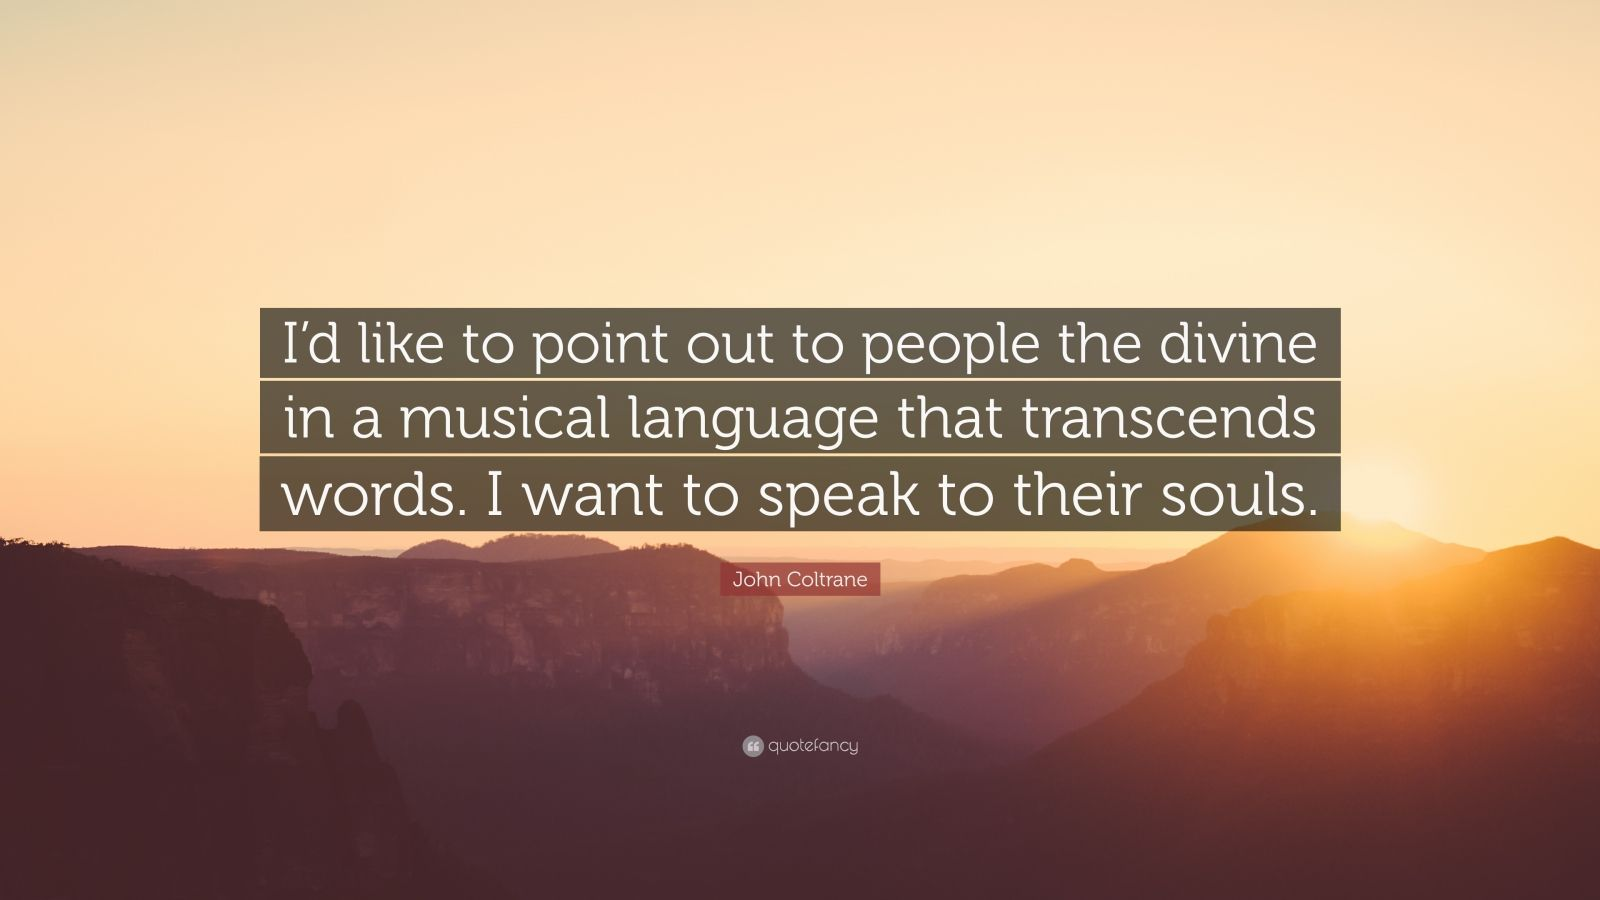 """John Coltrane Quote: """"I'd like to point out to people the divine in a musical language that transcends words. I want to speak to their souls."""""""